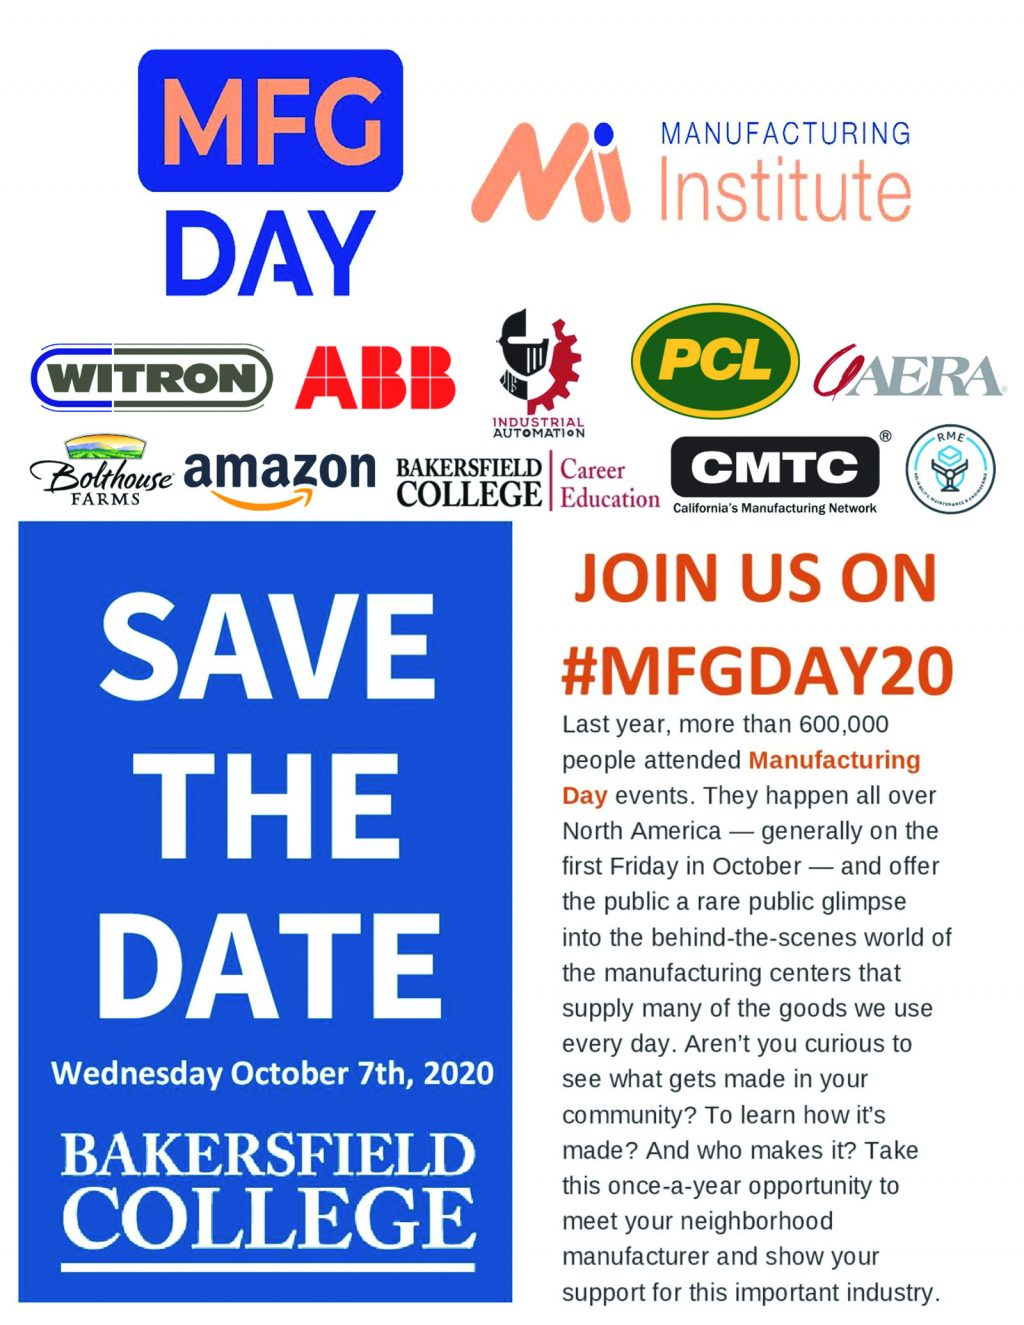 Bakersfield College Invites You to MFG Day 2020